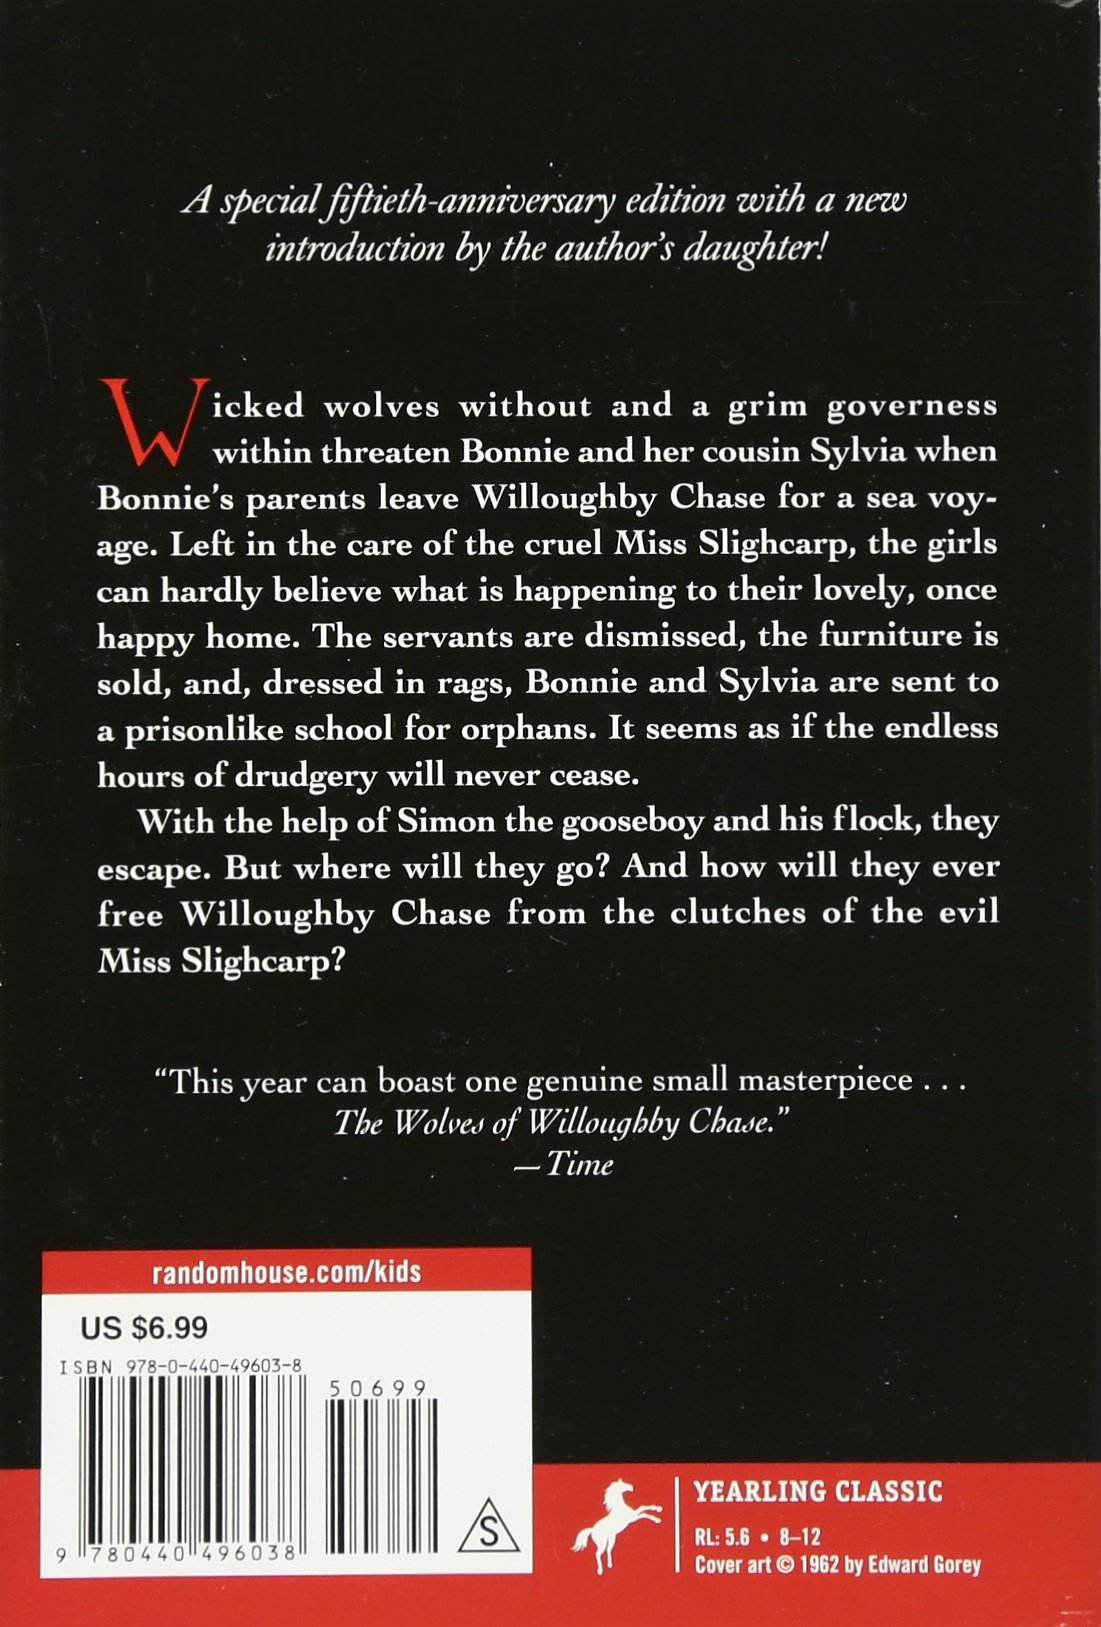 The Wolves Of Willoughby Chase (wolves Chronicles (paperback)): Joan Aiken:  9780440496038: Amazon: Books